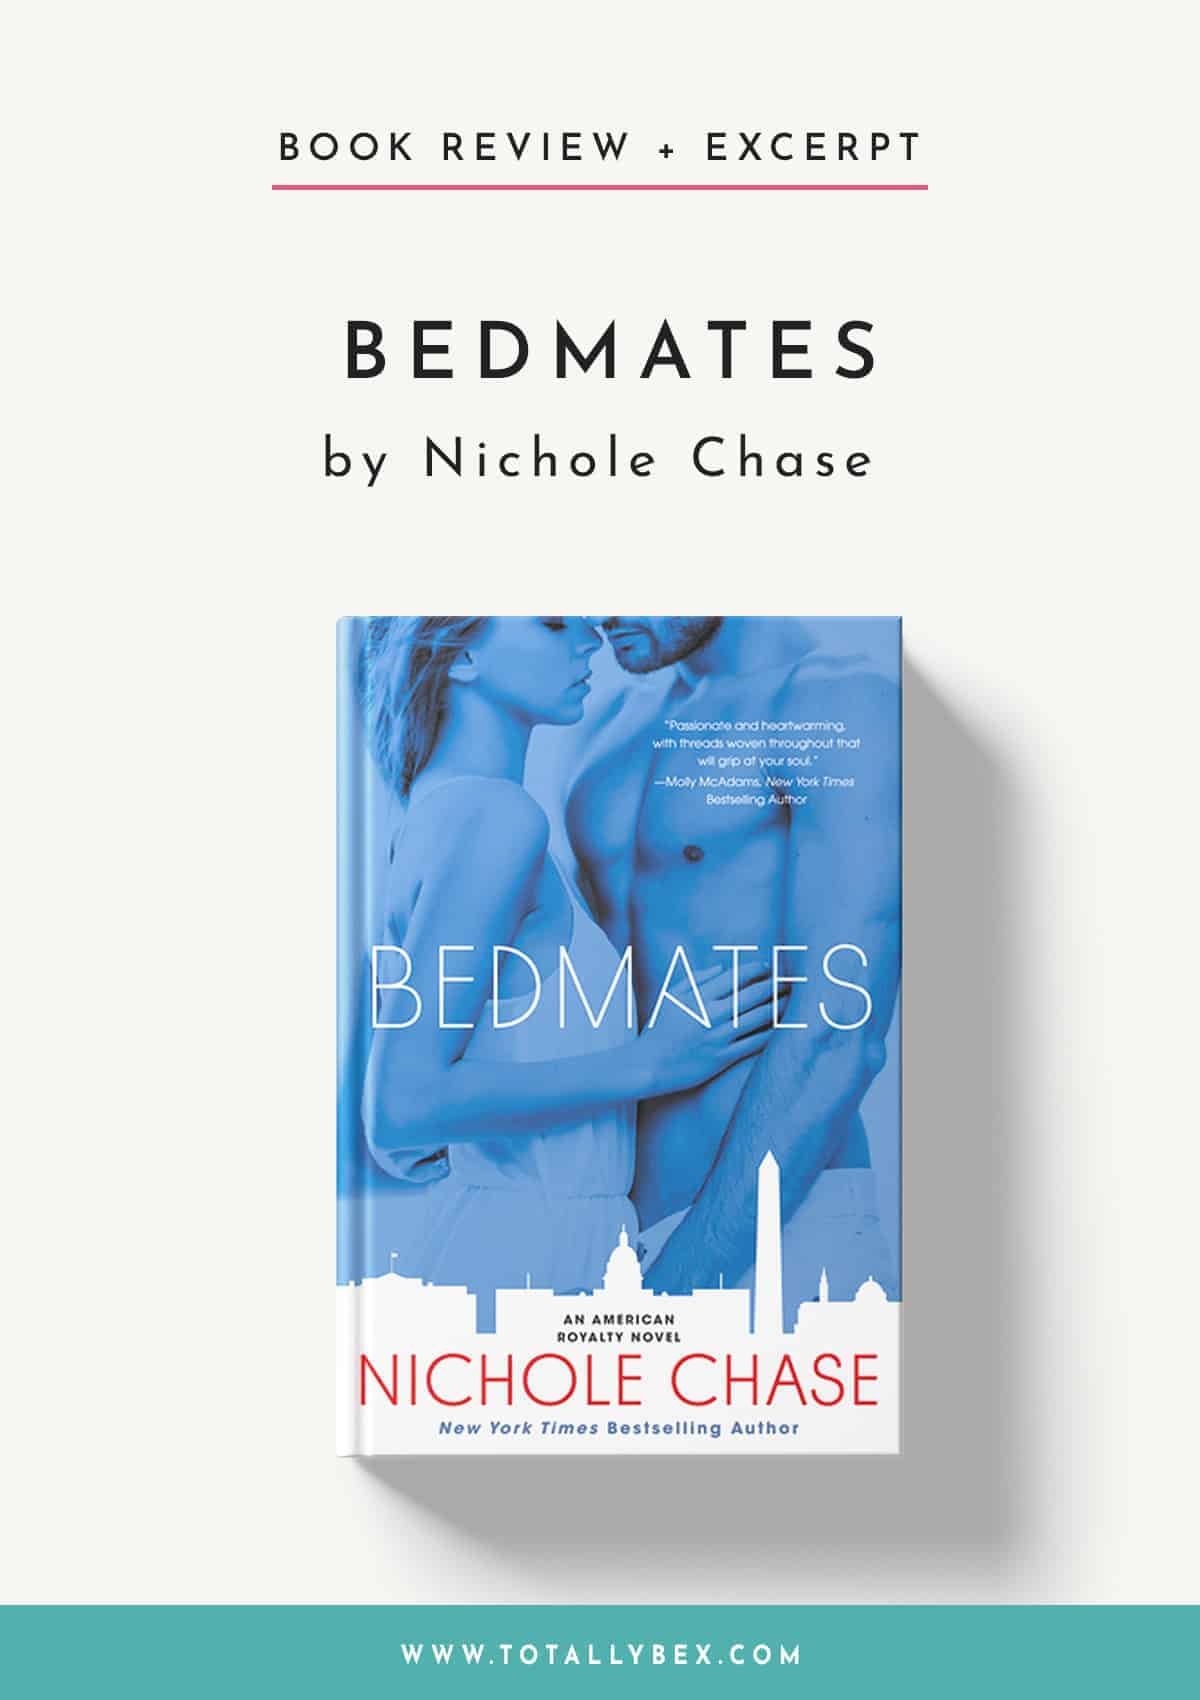 Bedmates by Nichole Chase-BookReview+Excerpt